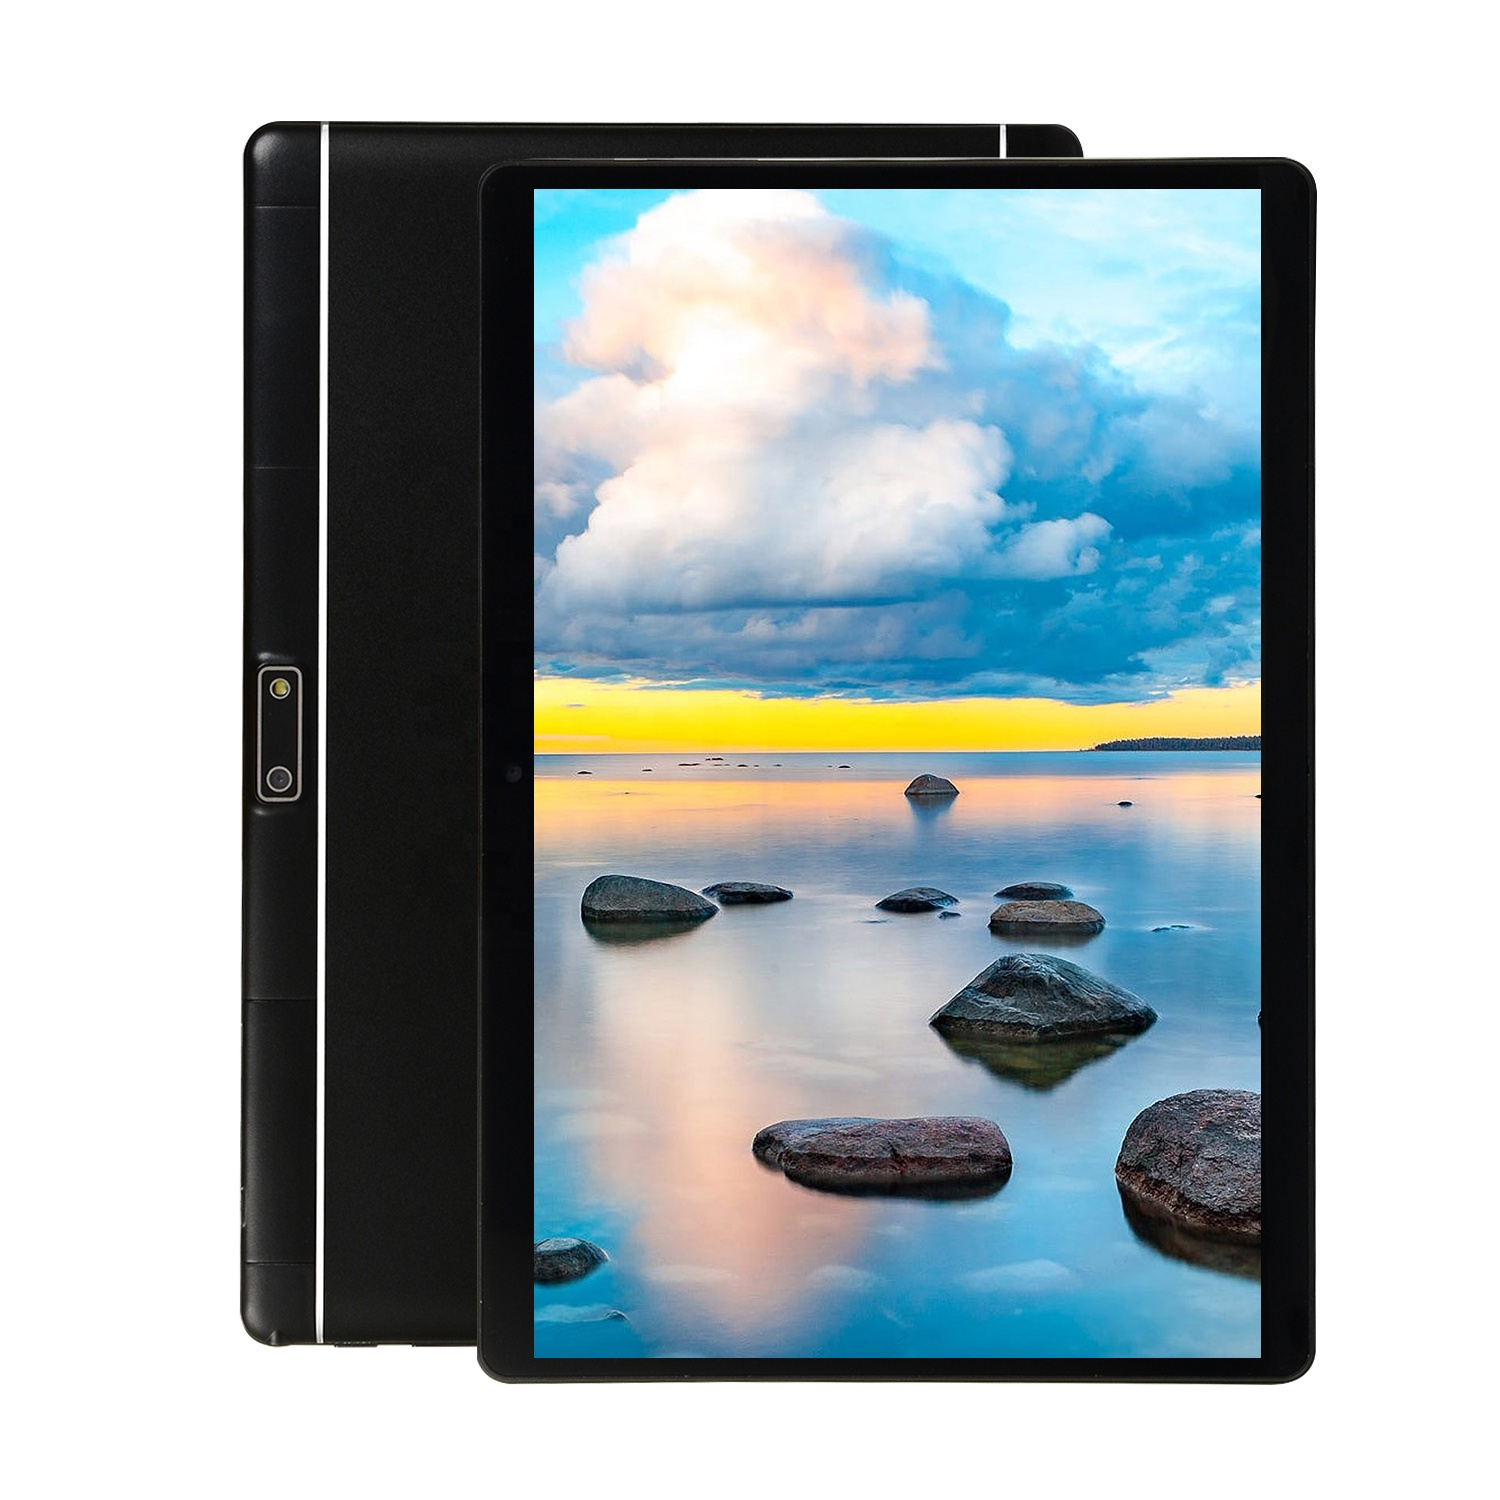 China Marca 1GB RAM + 16GB ROM Android Smart Mobile Phone 10 Polegadas Industrial Tablet Android Pc